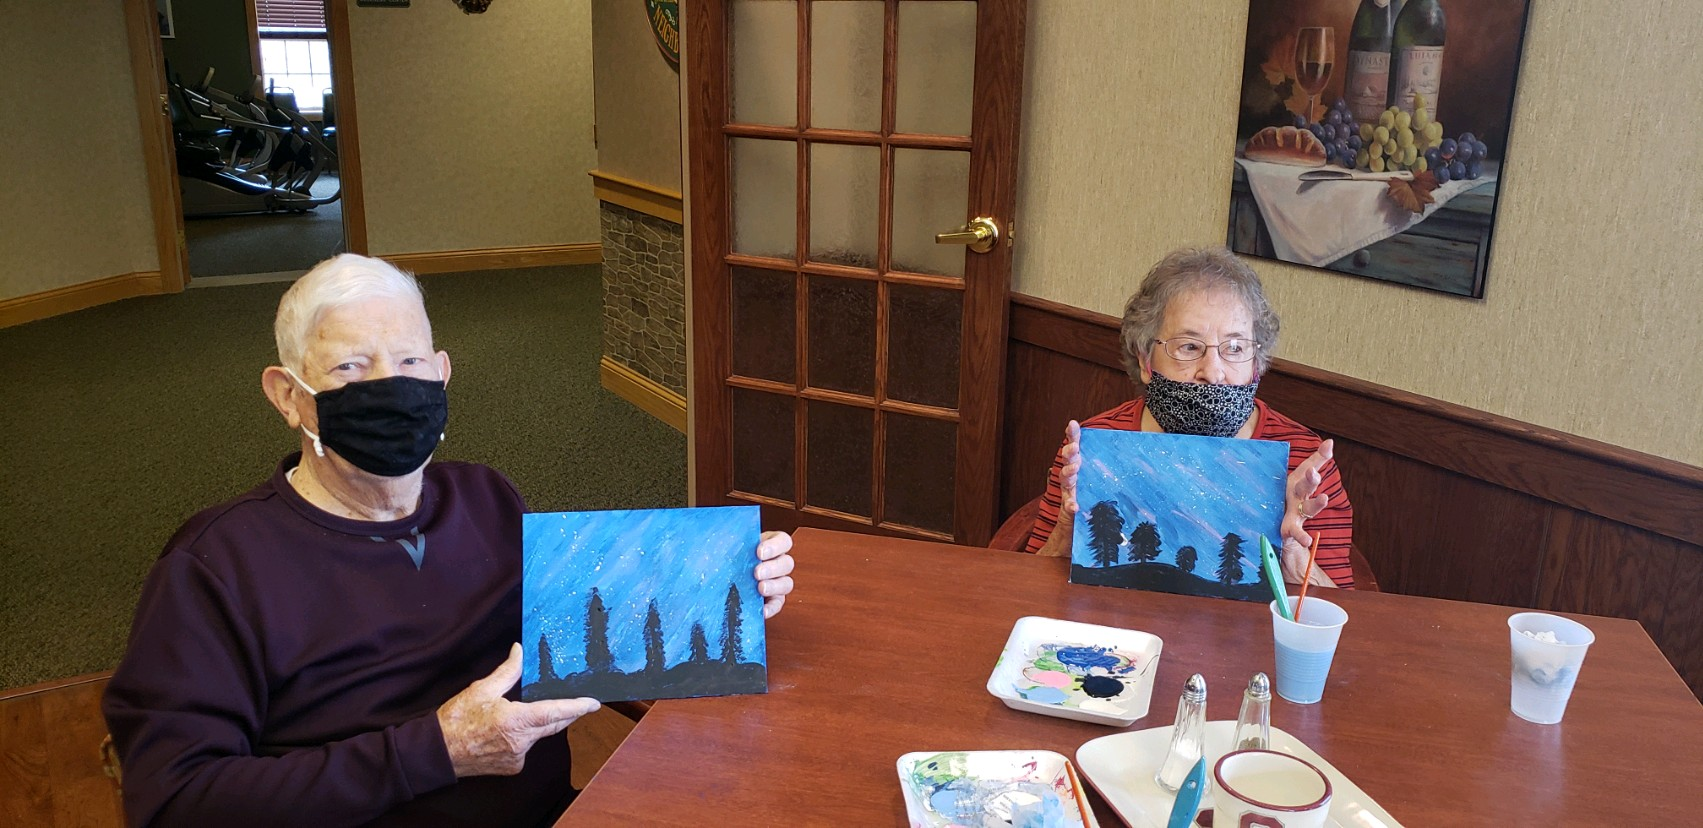 George & Mary enjoying painting class together